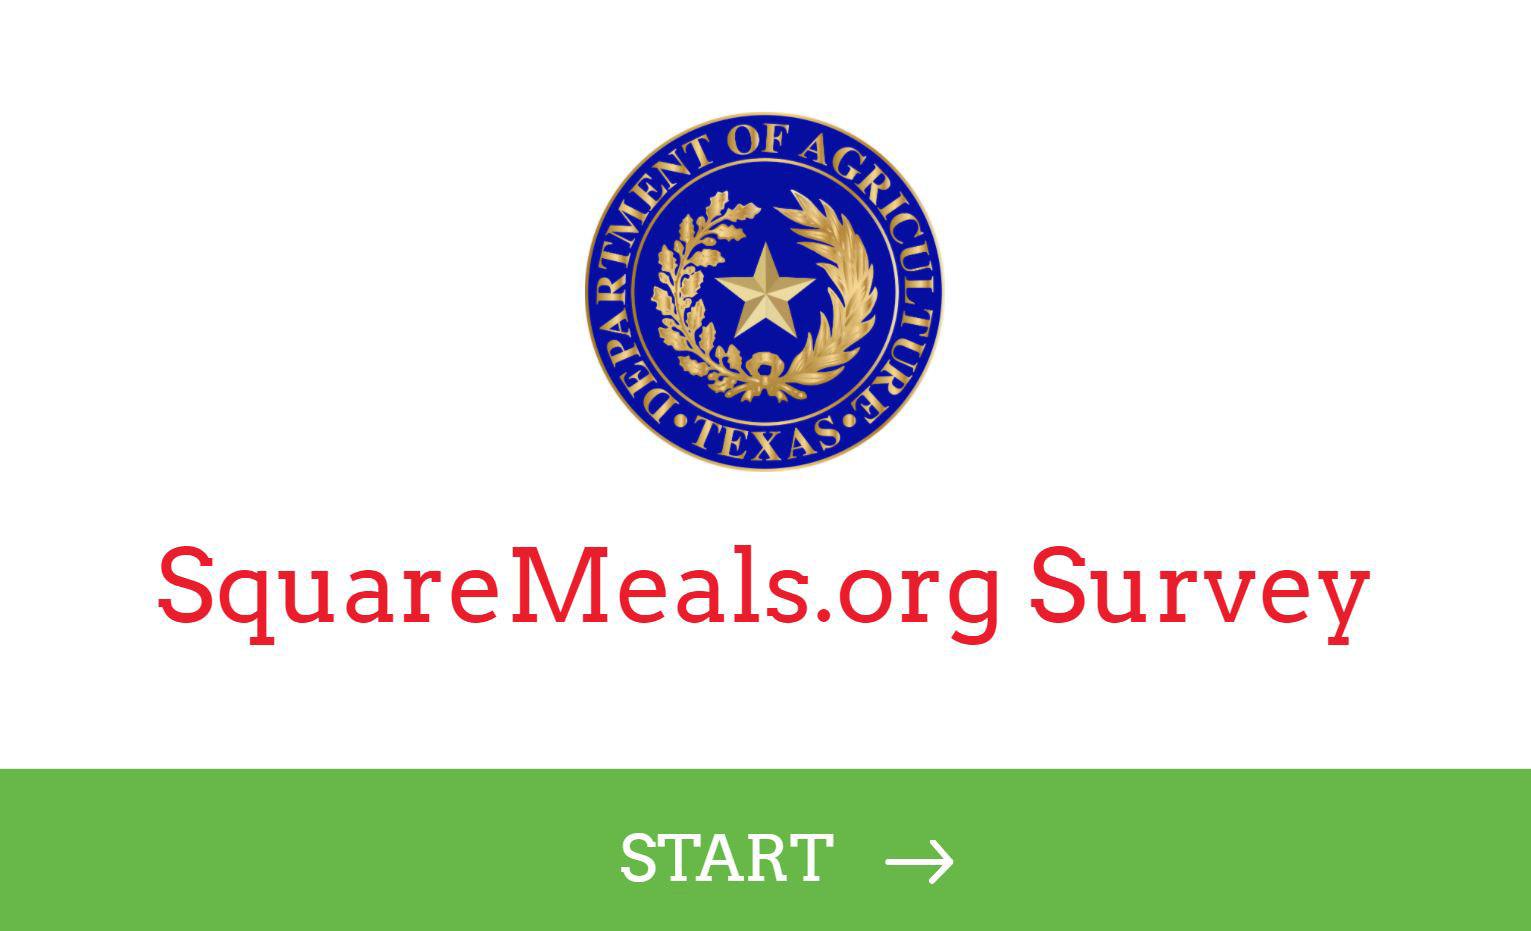 SquareMeals.org Survey